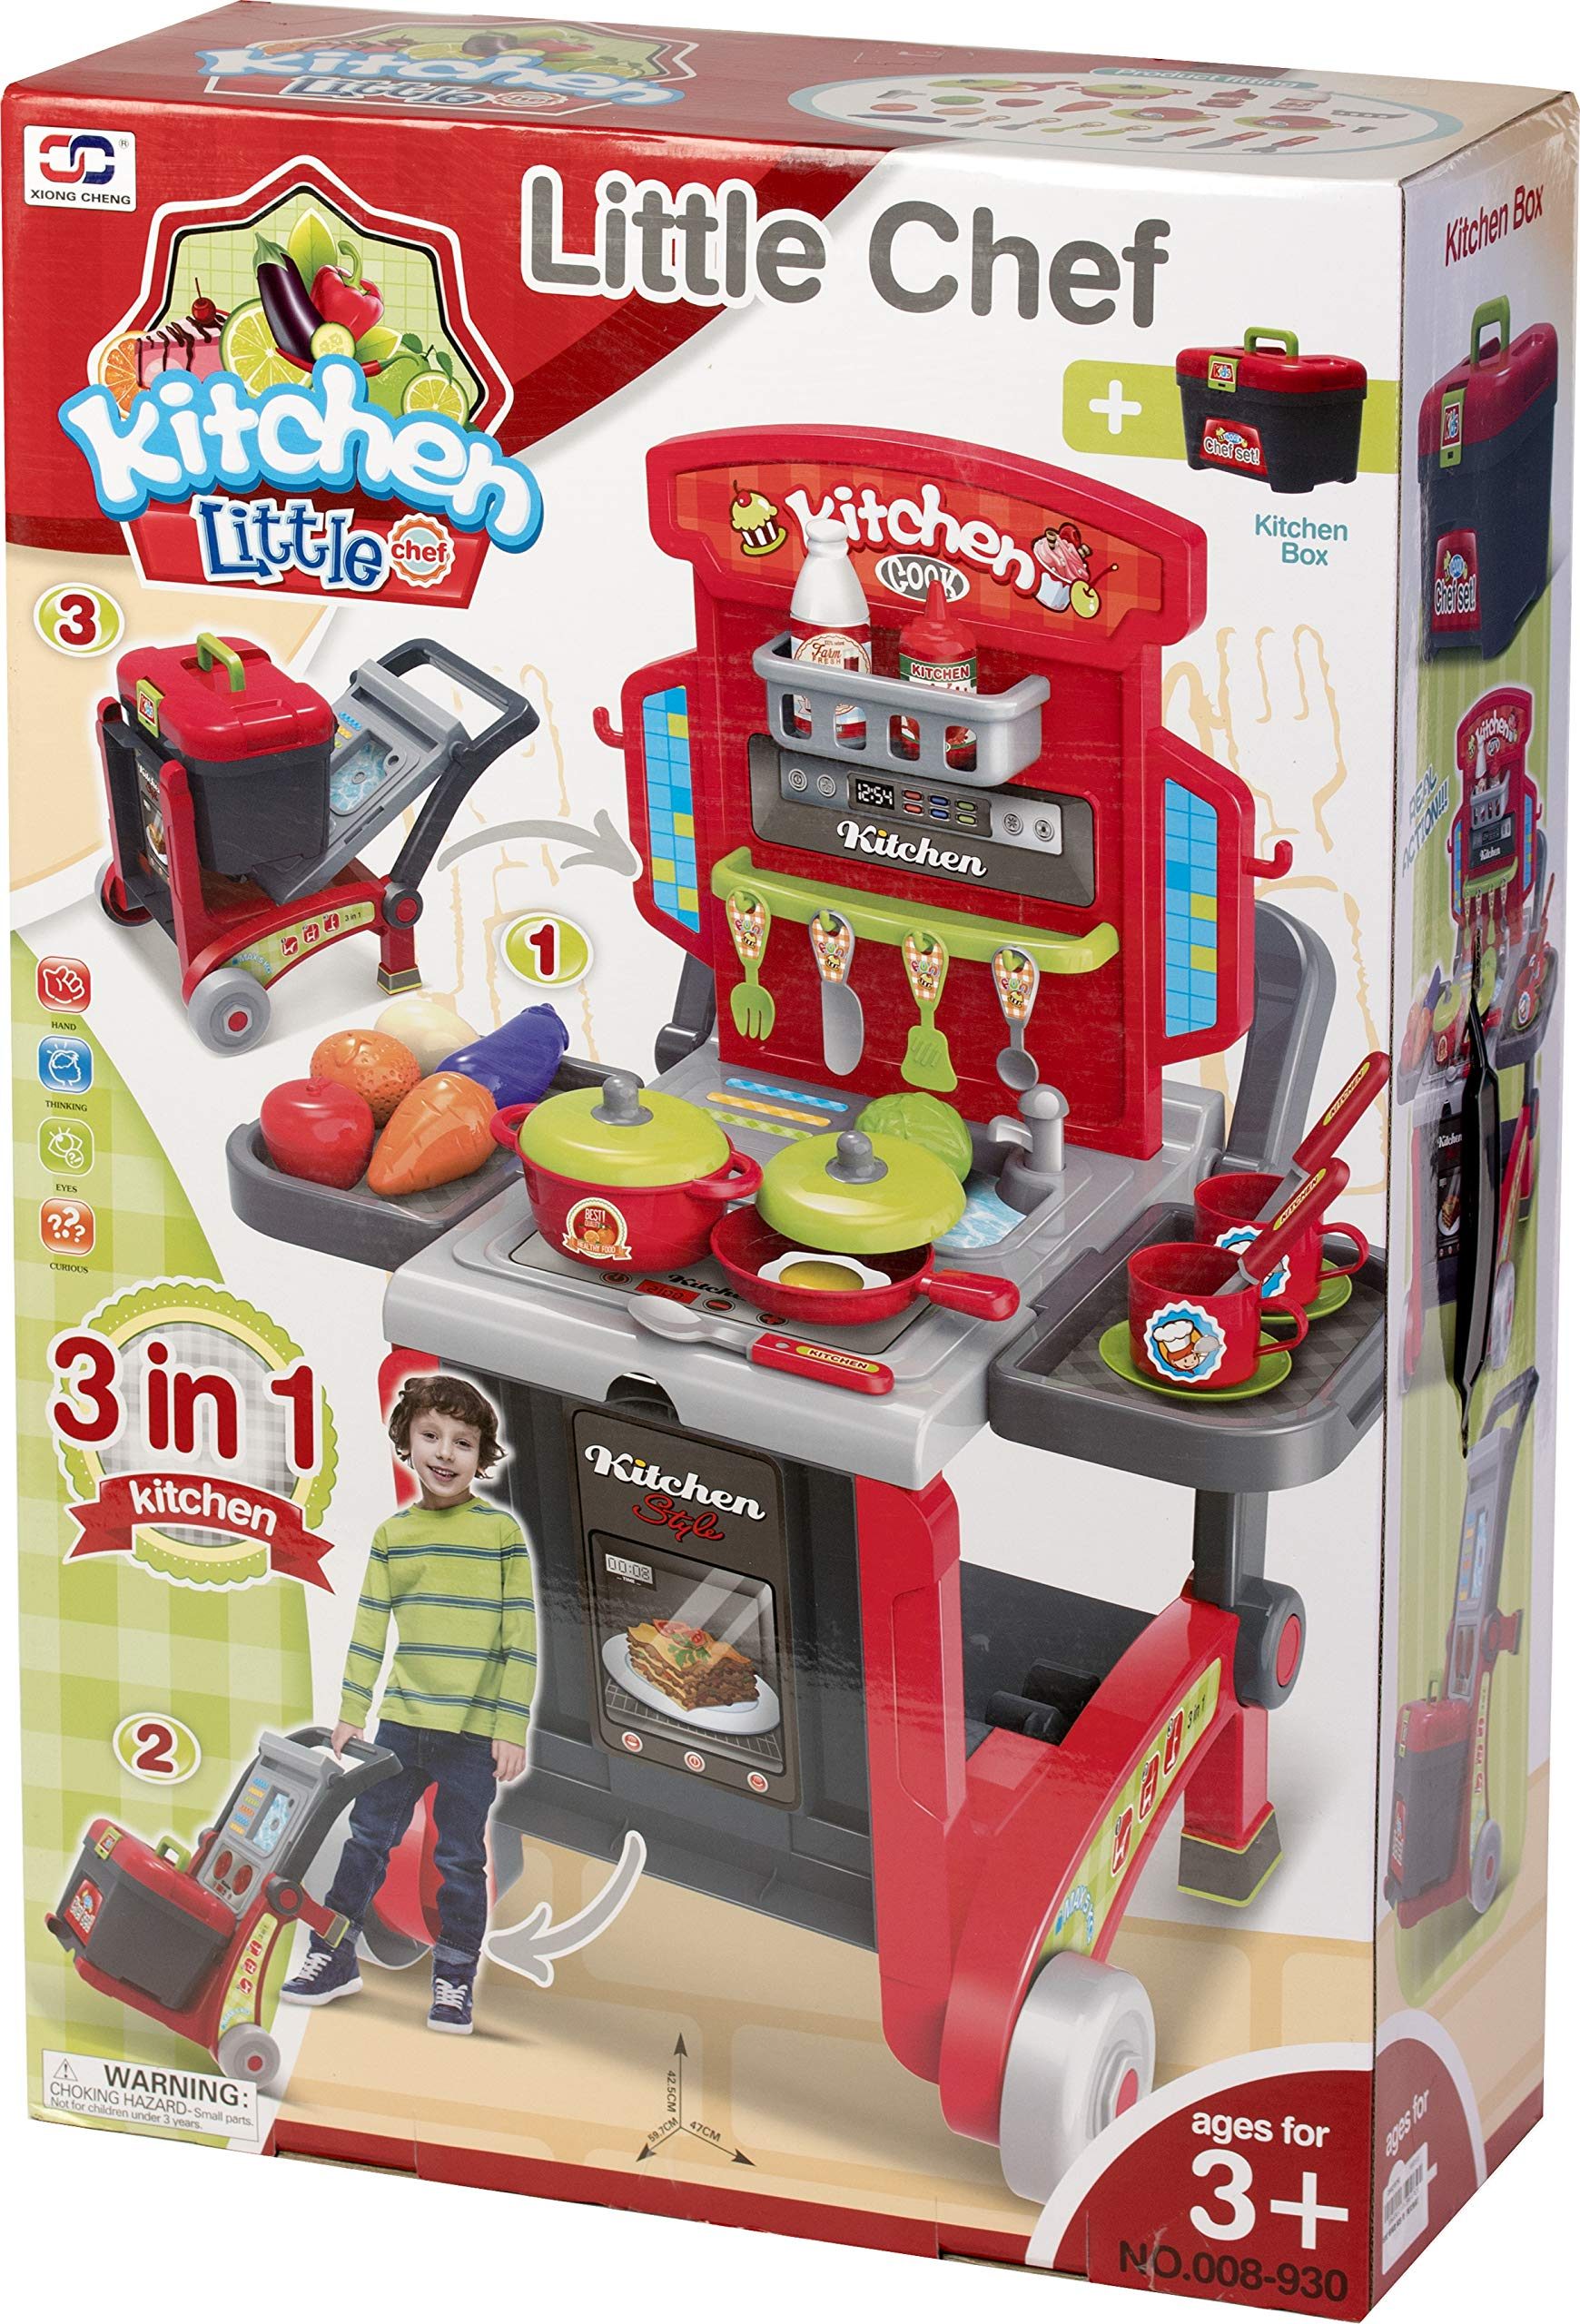 Kitchen Cook Grill Boys Playset Oven Stove, Vegetables, Pots & Pans, Cups, Utensils w/ Compact Carry Case by Kitchen Cook (Image #6)